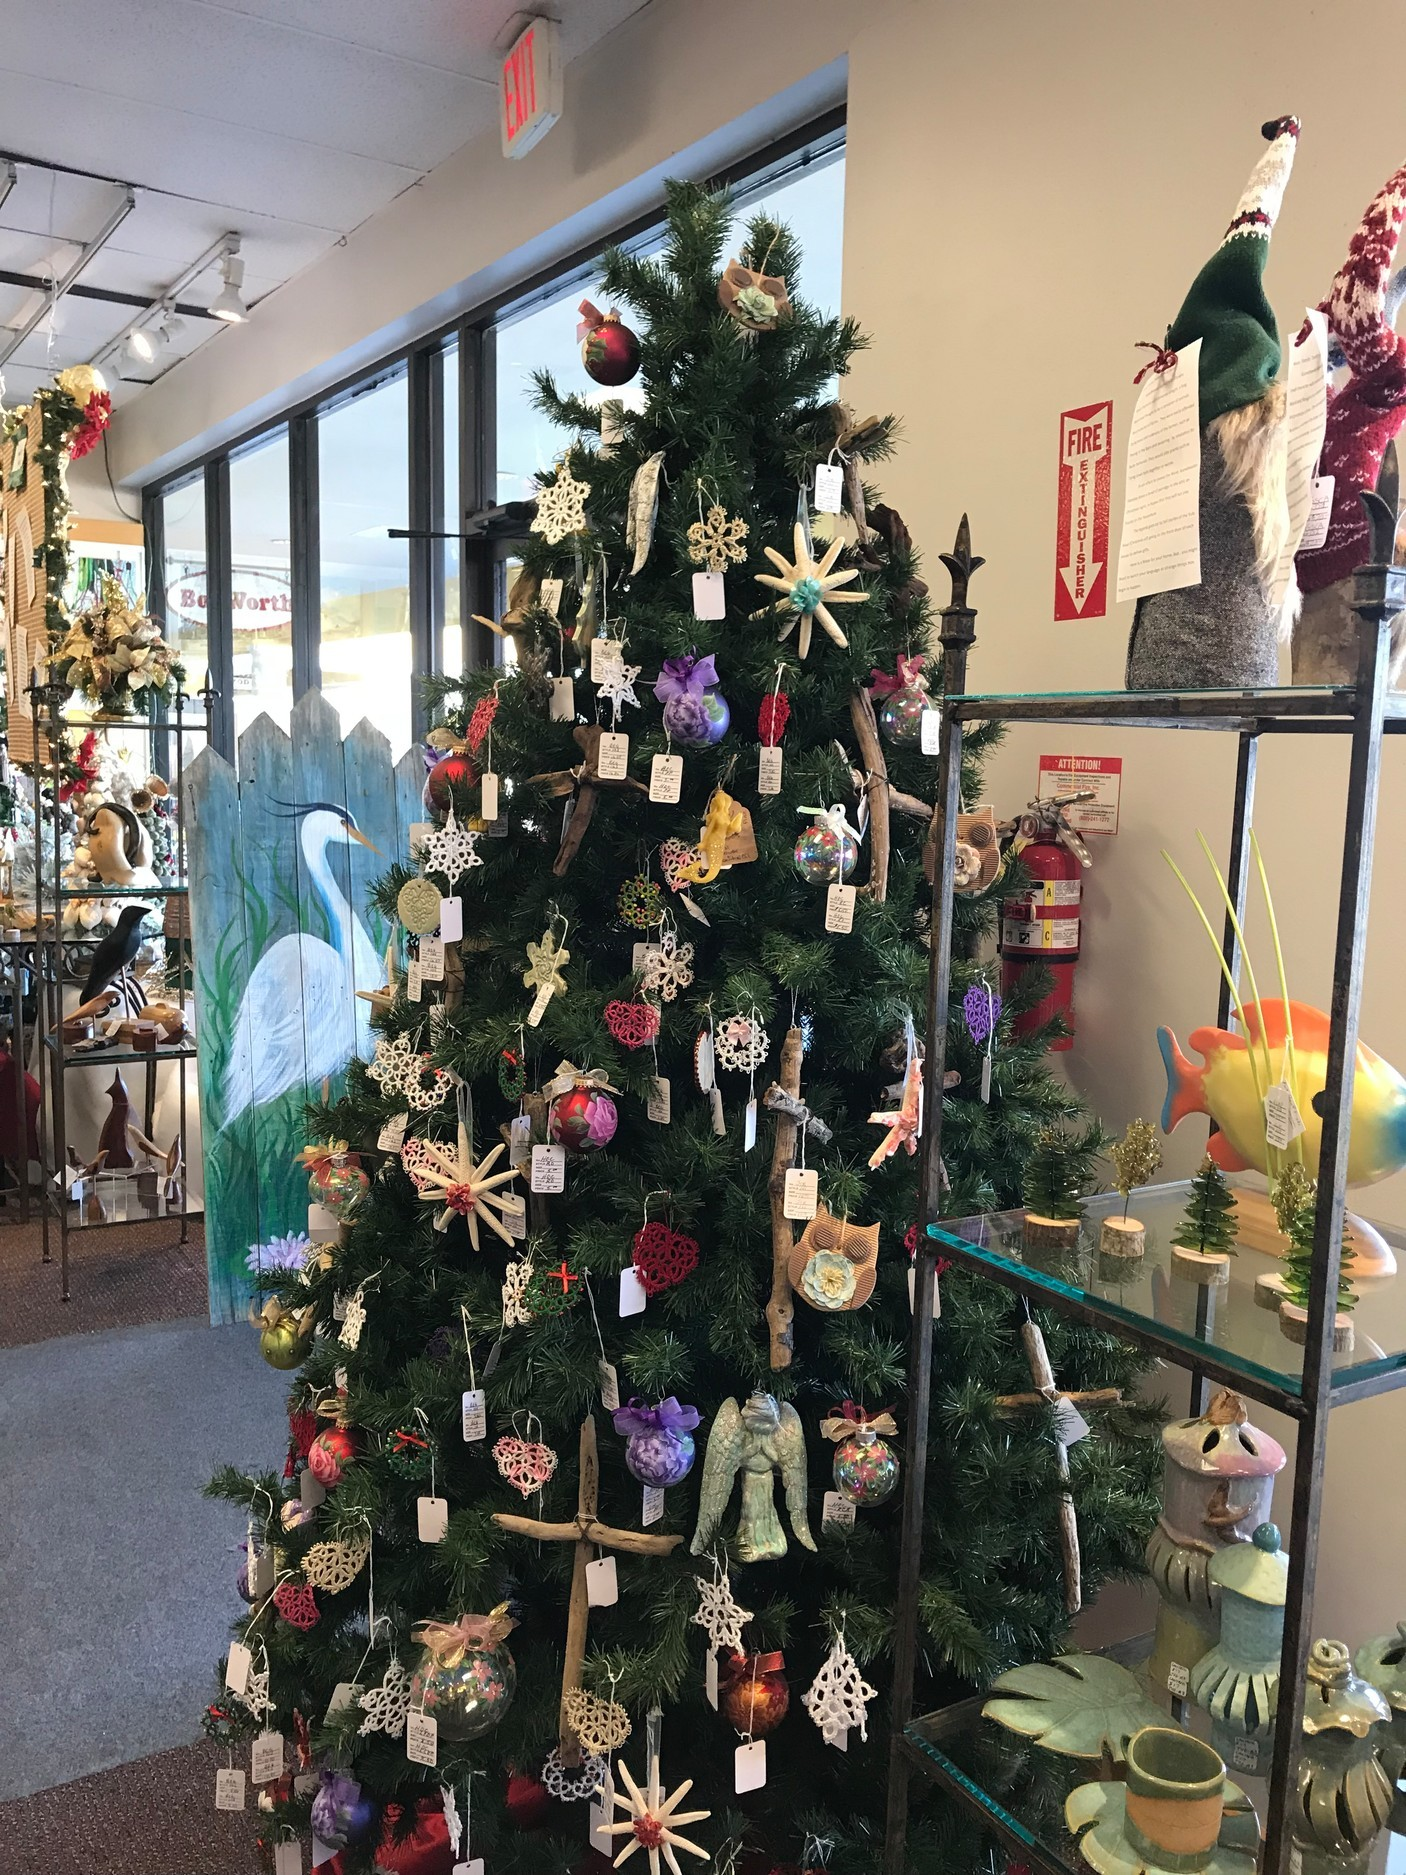 2017 Trim A Tree display.